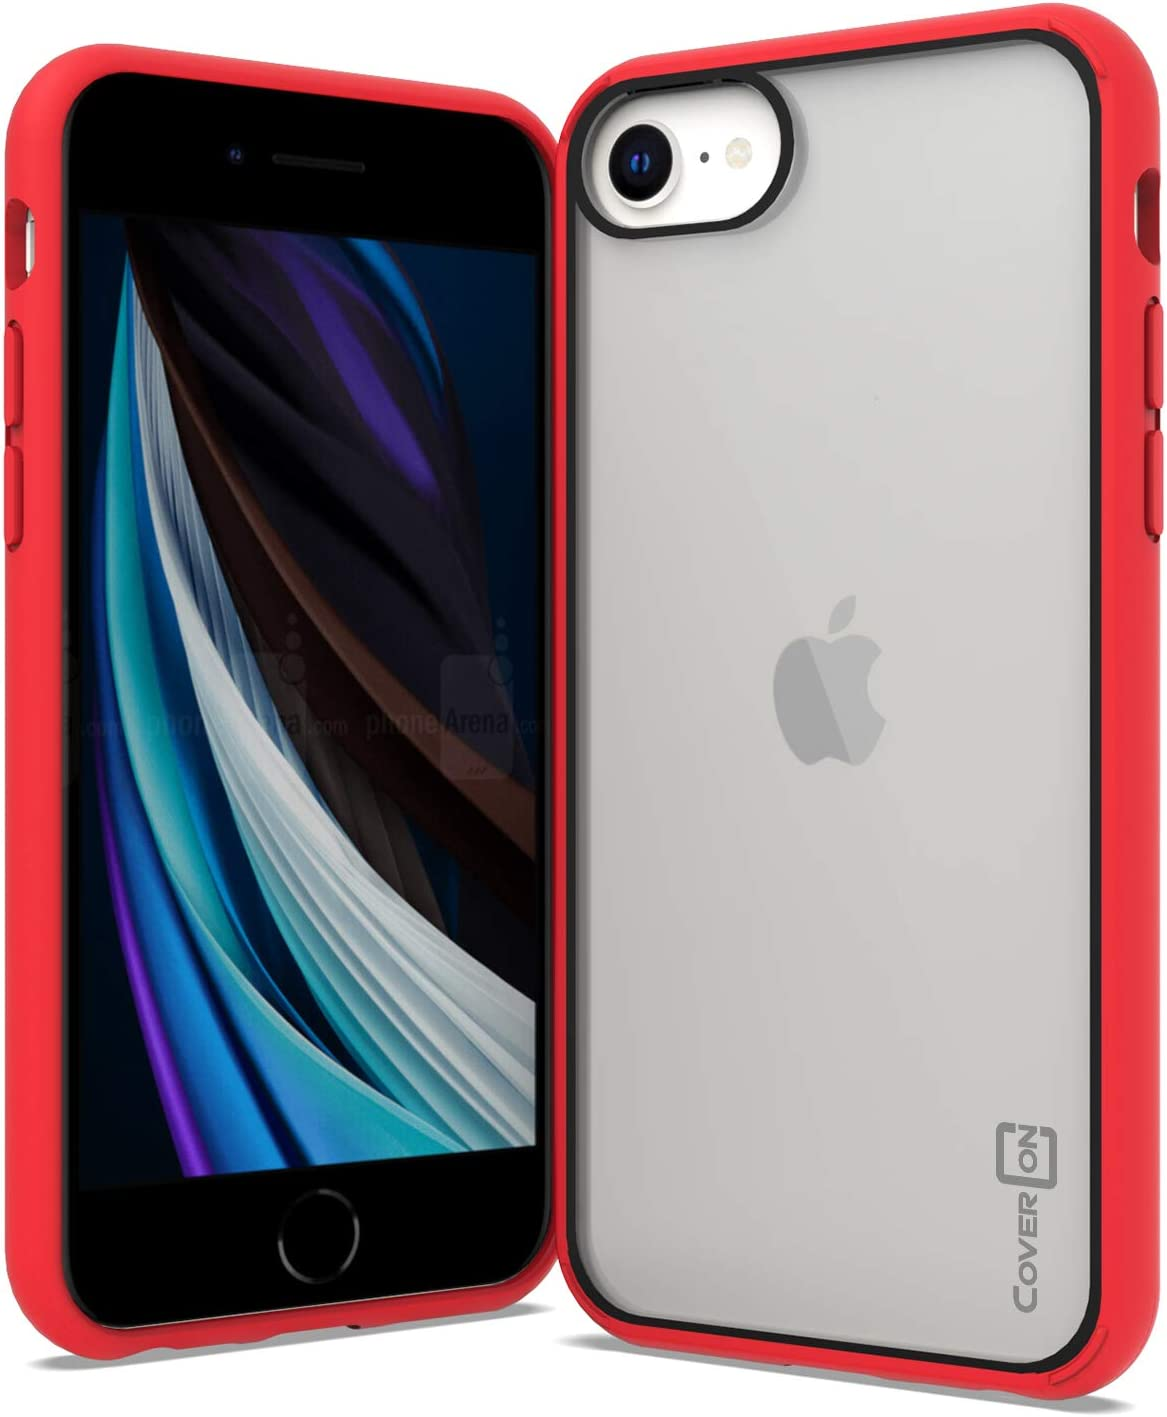 CoverON Clear Rugged Designed for Apple iPhone SE CASE (2020) / iPhone 8 Case, Hybrid Phone Cover TPU Bumper -Black/Red